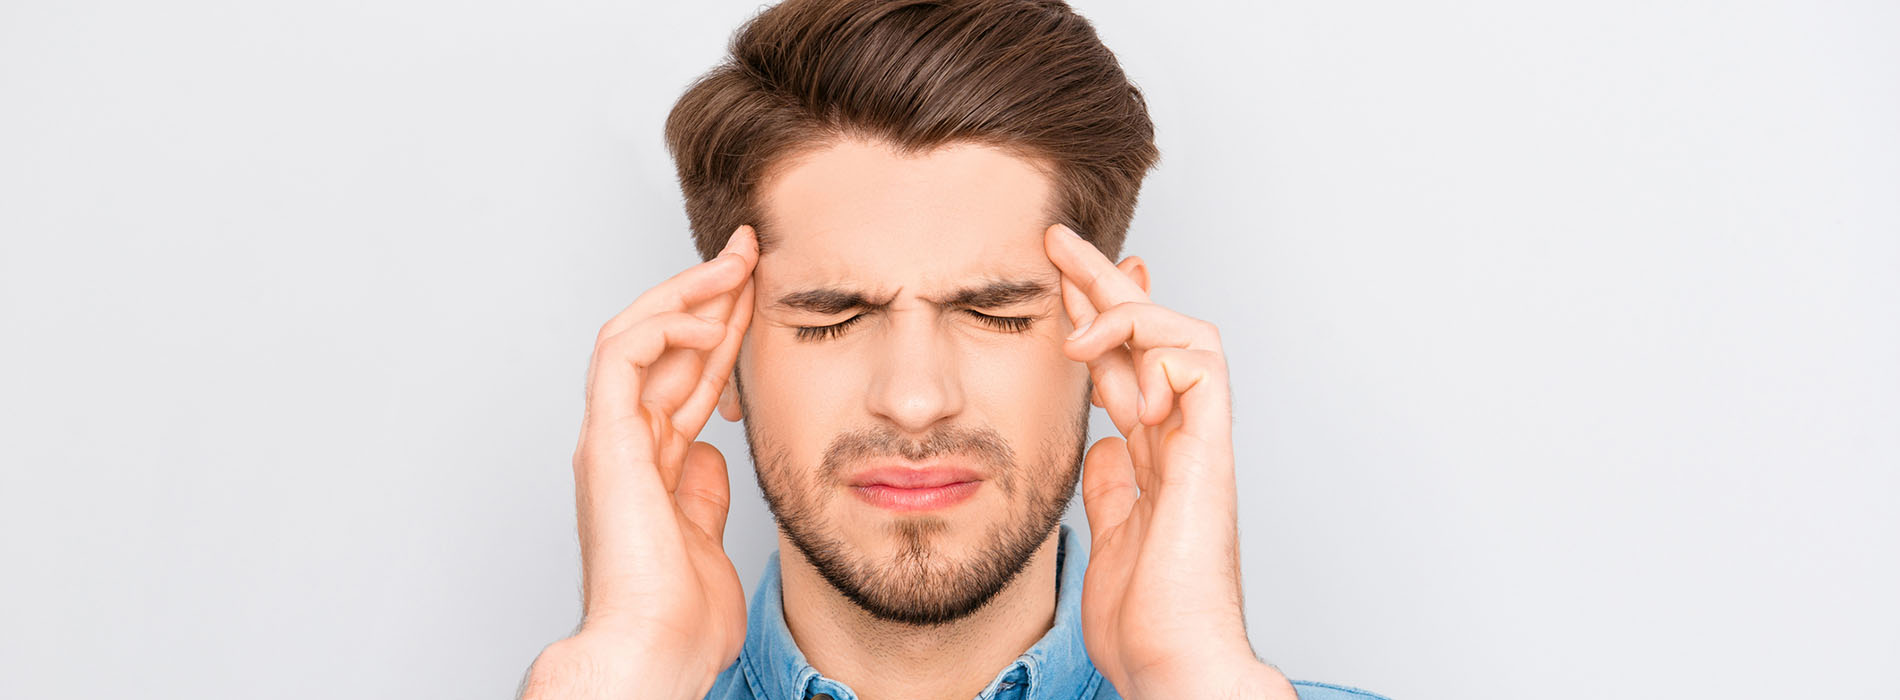 Man hold his hand on either side of his head looking stressed